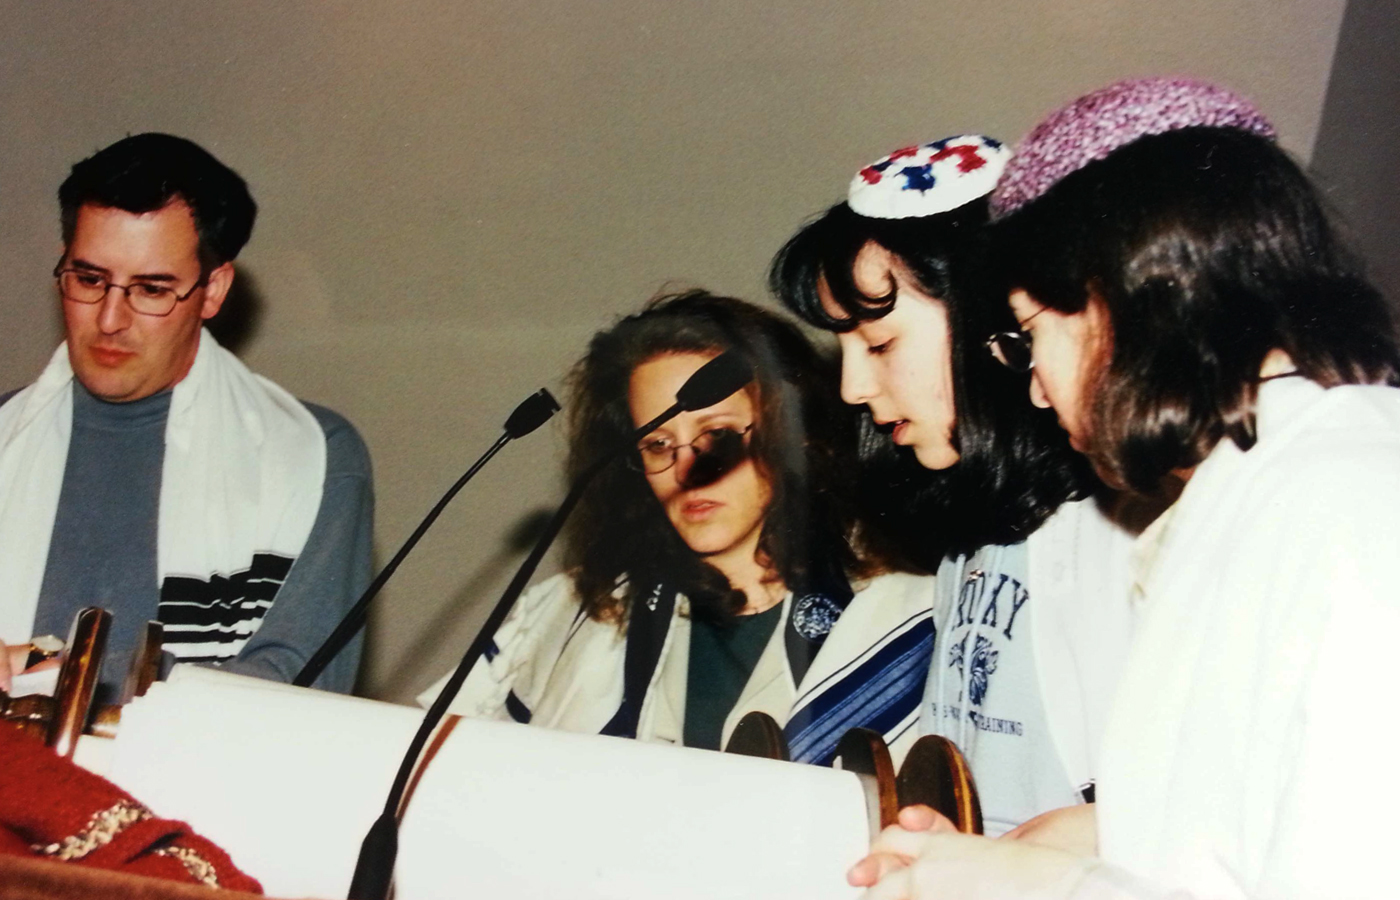 Me reading my Haftorah portion during a Bat-Mitzvah rehearsal with my aunt, uncle and cantor looking on.